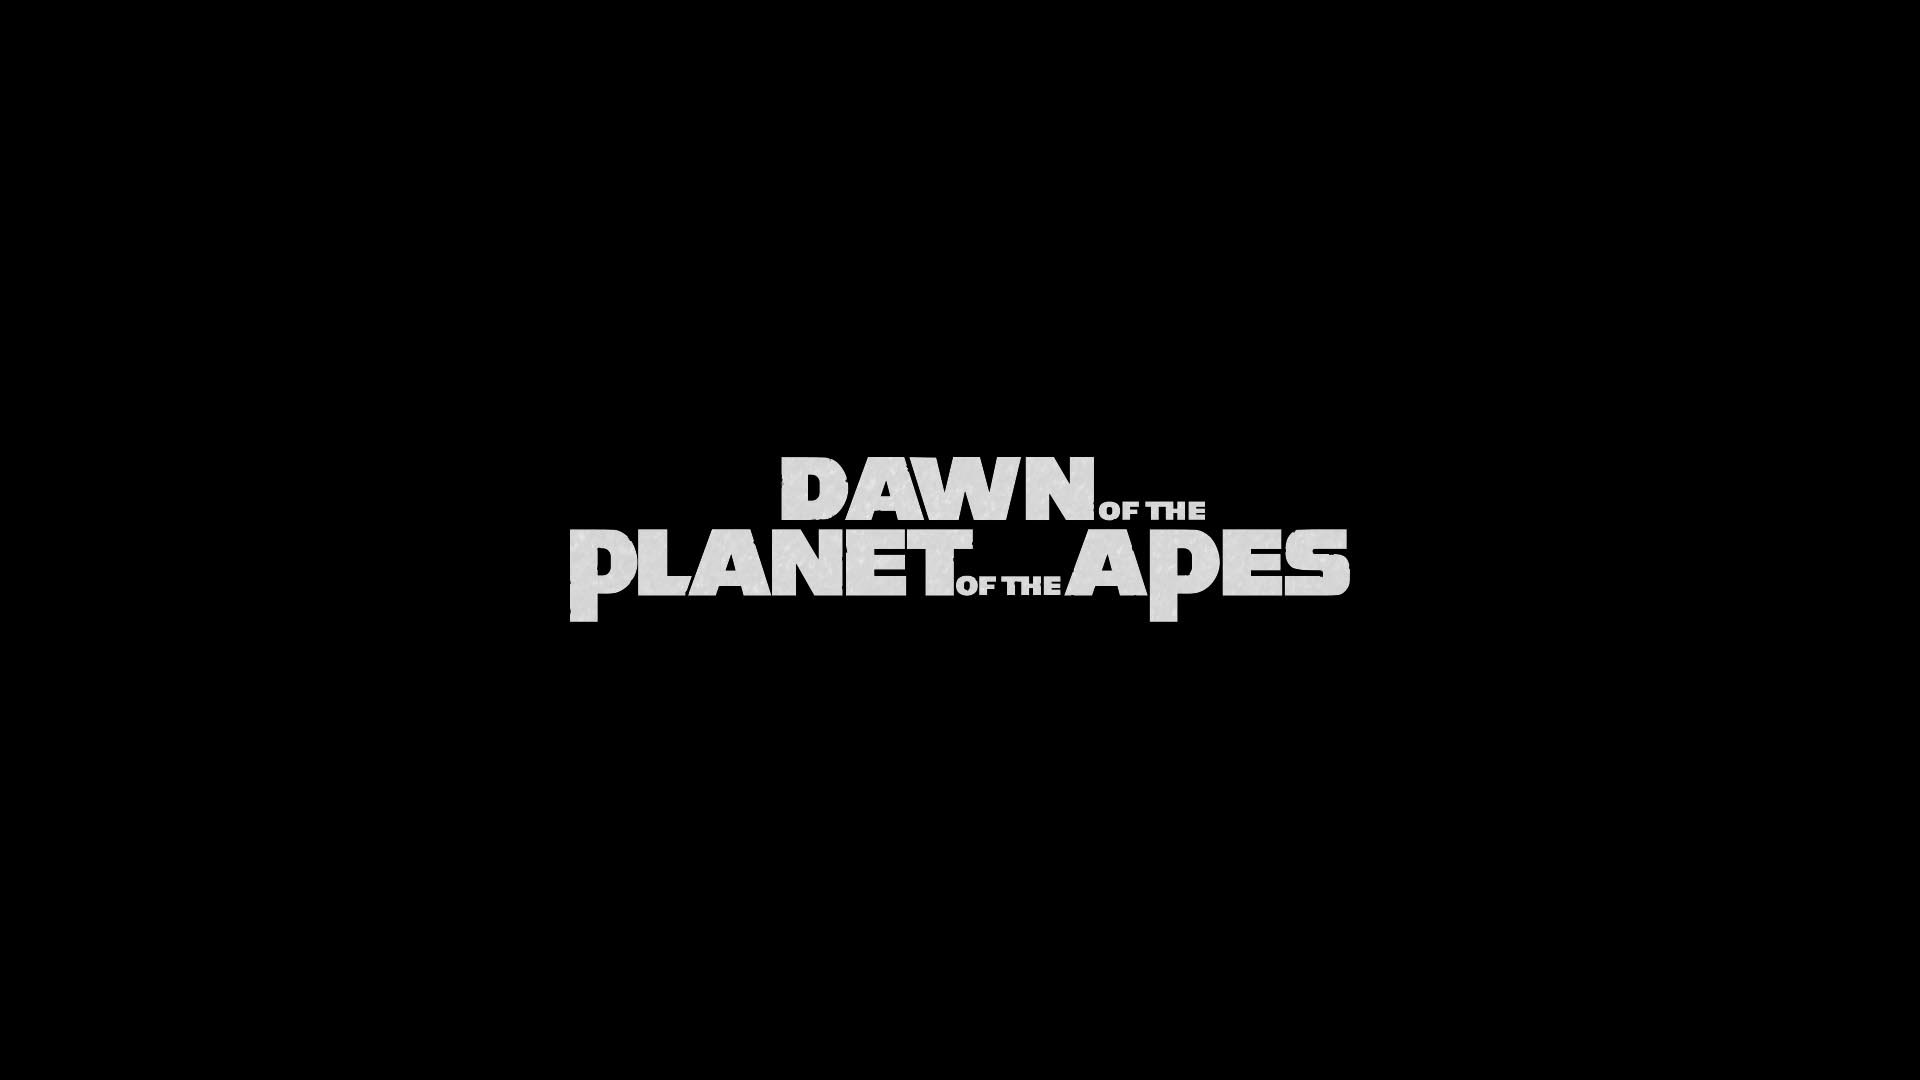 High resolution Dawn Of The Planet Of The Apes hd 1080p background ID:213706 for desktop